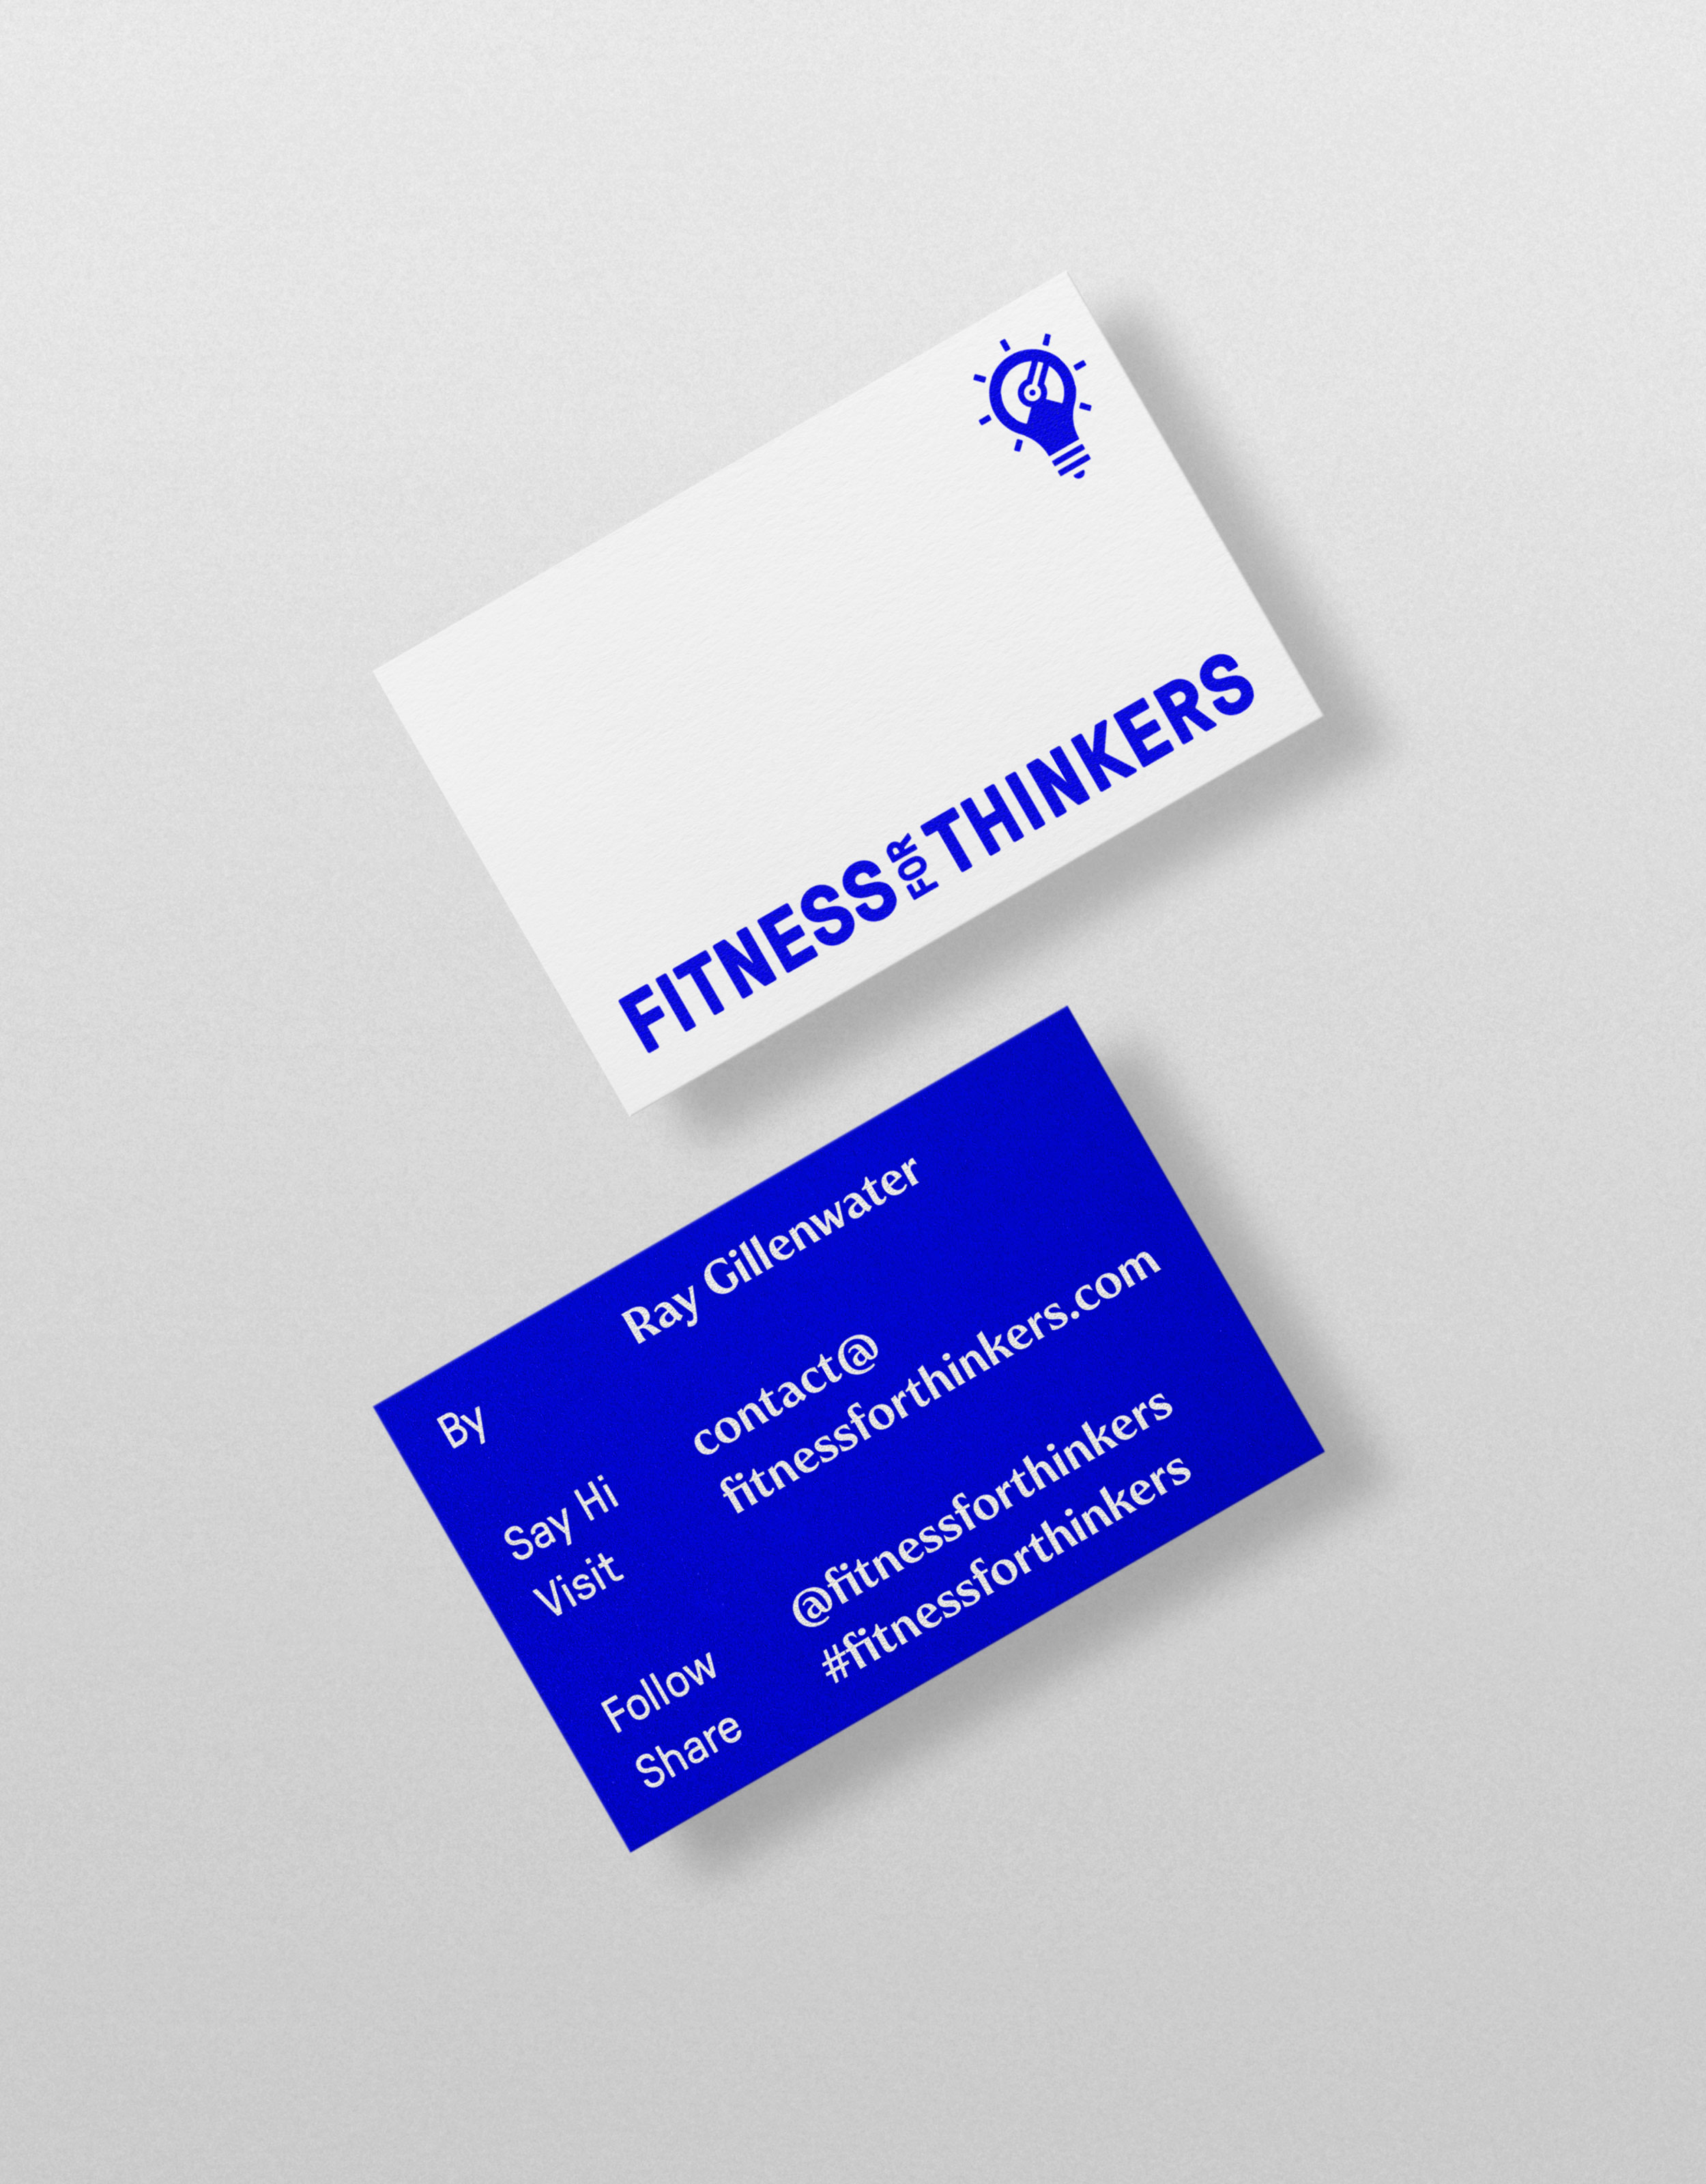 Diferente — Fitness for Thinkers